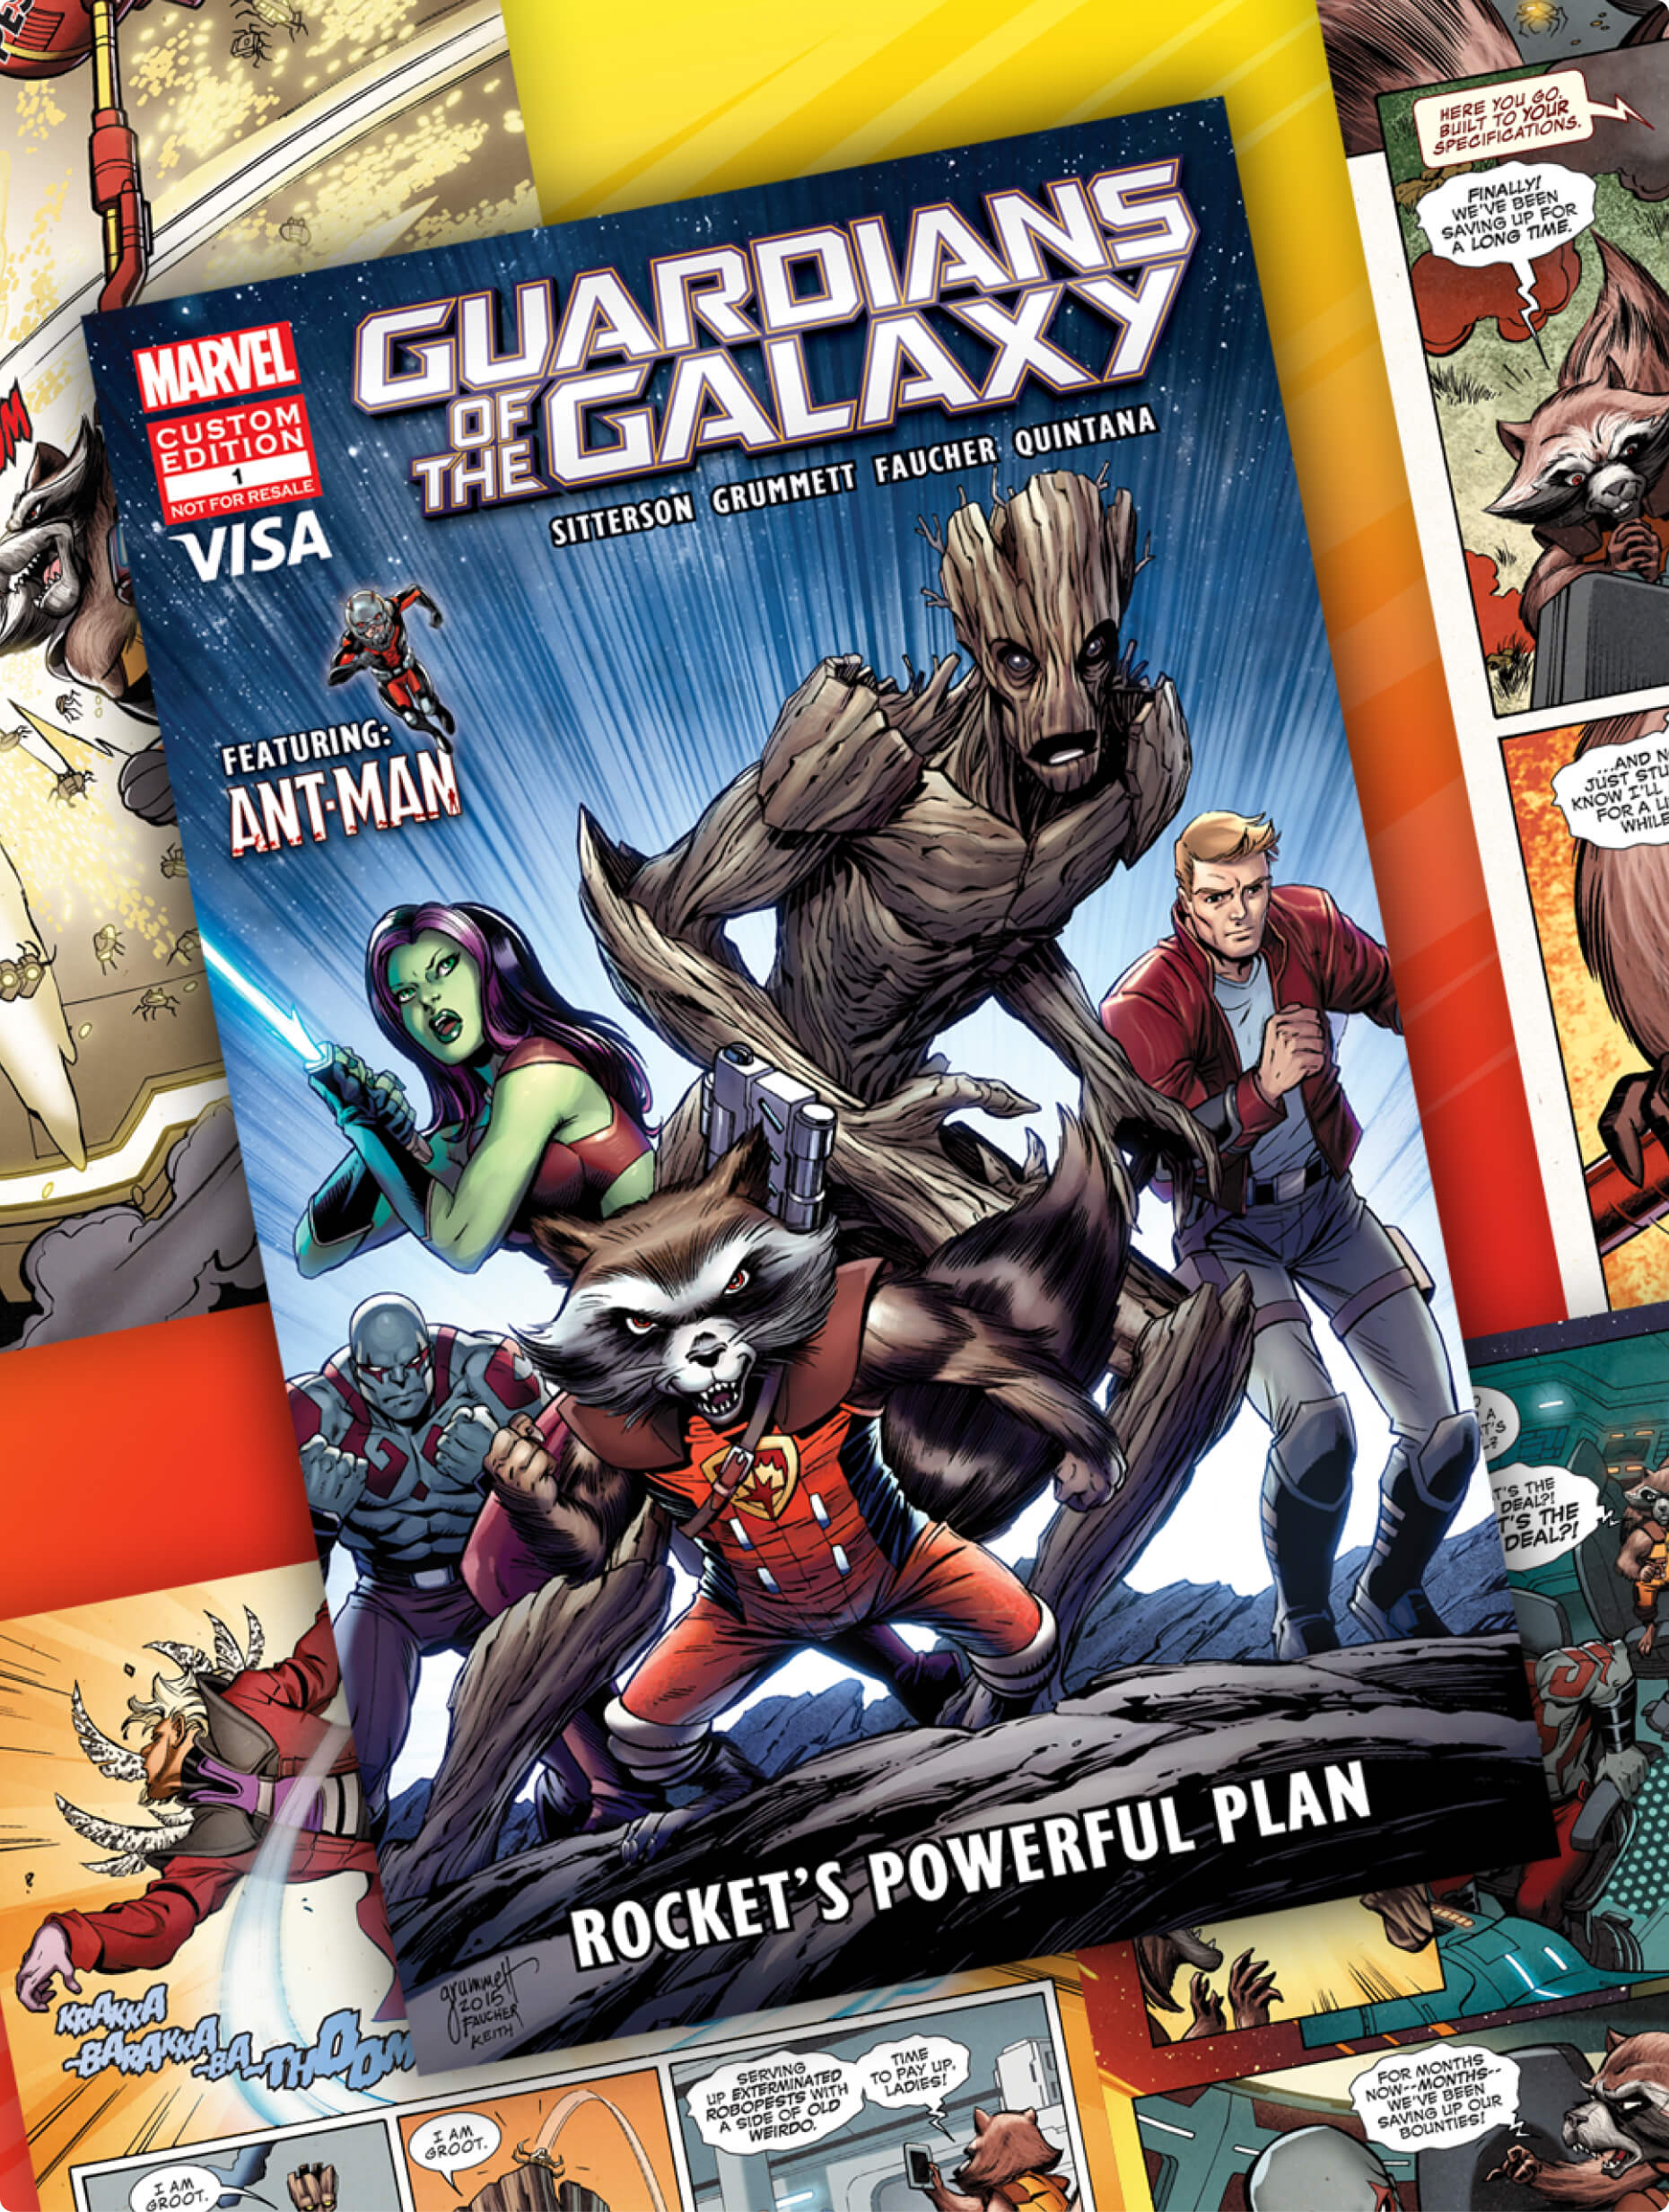 A special edition of a Guardians of the Galaxy comic book teaching financial literacy is shown on a backdrop of scenes from the comic.